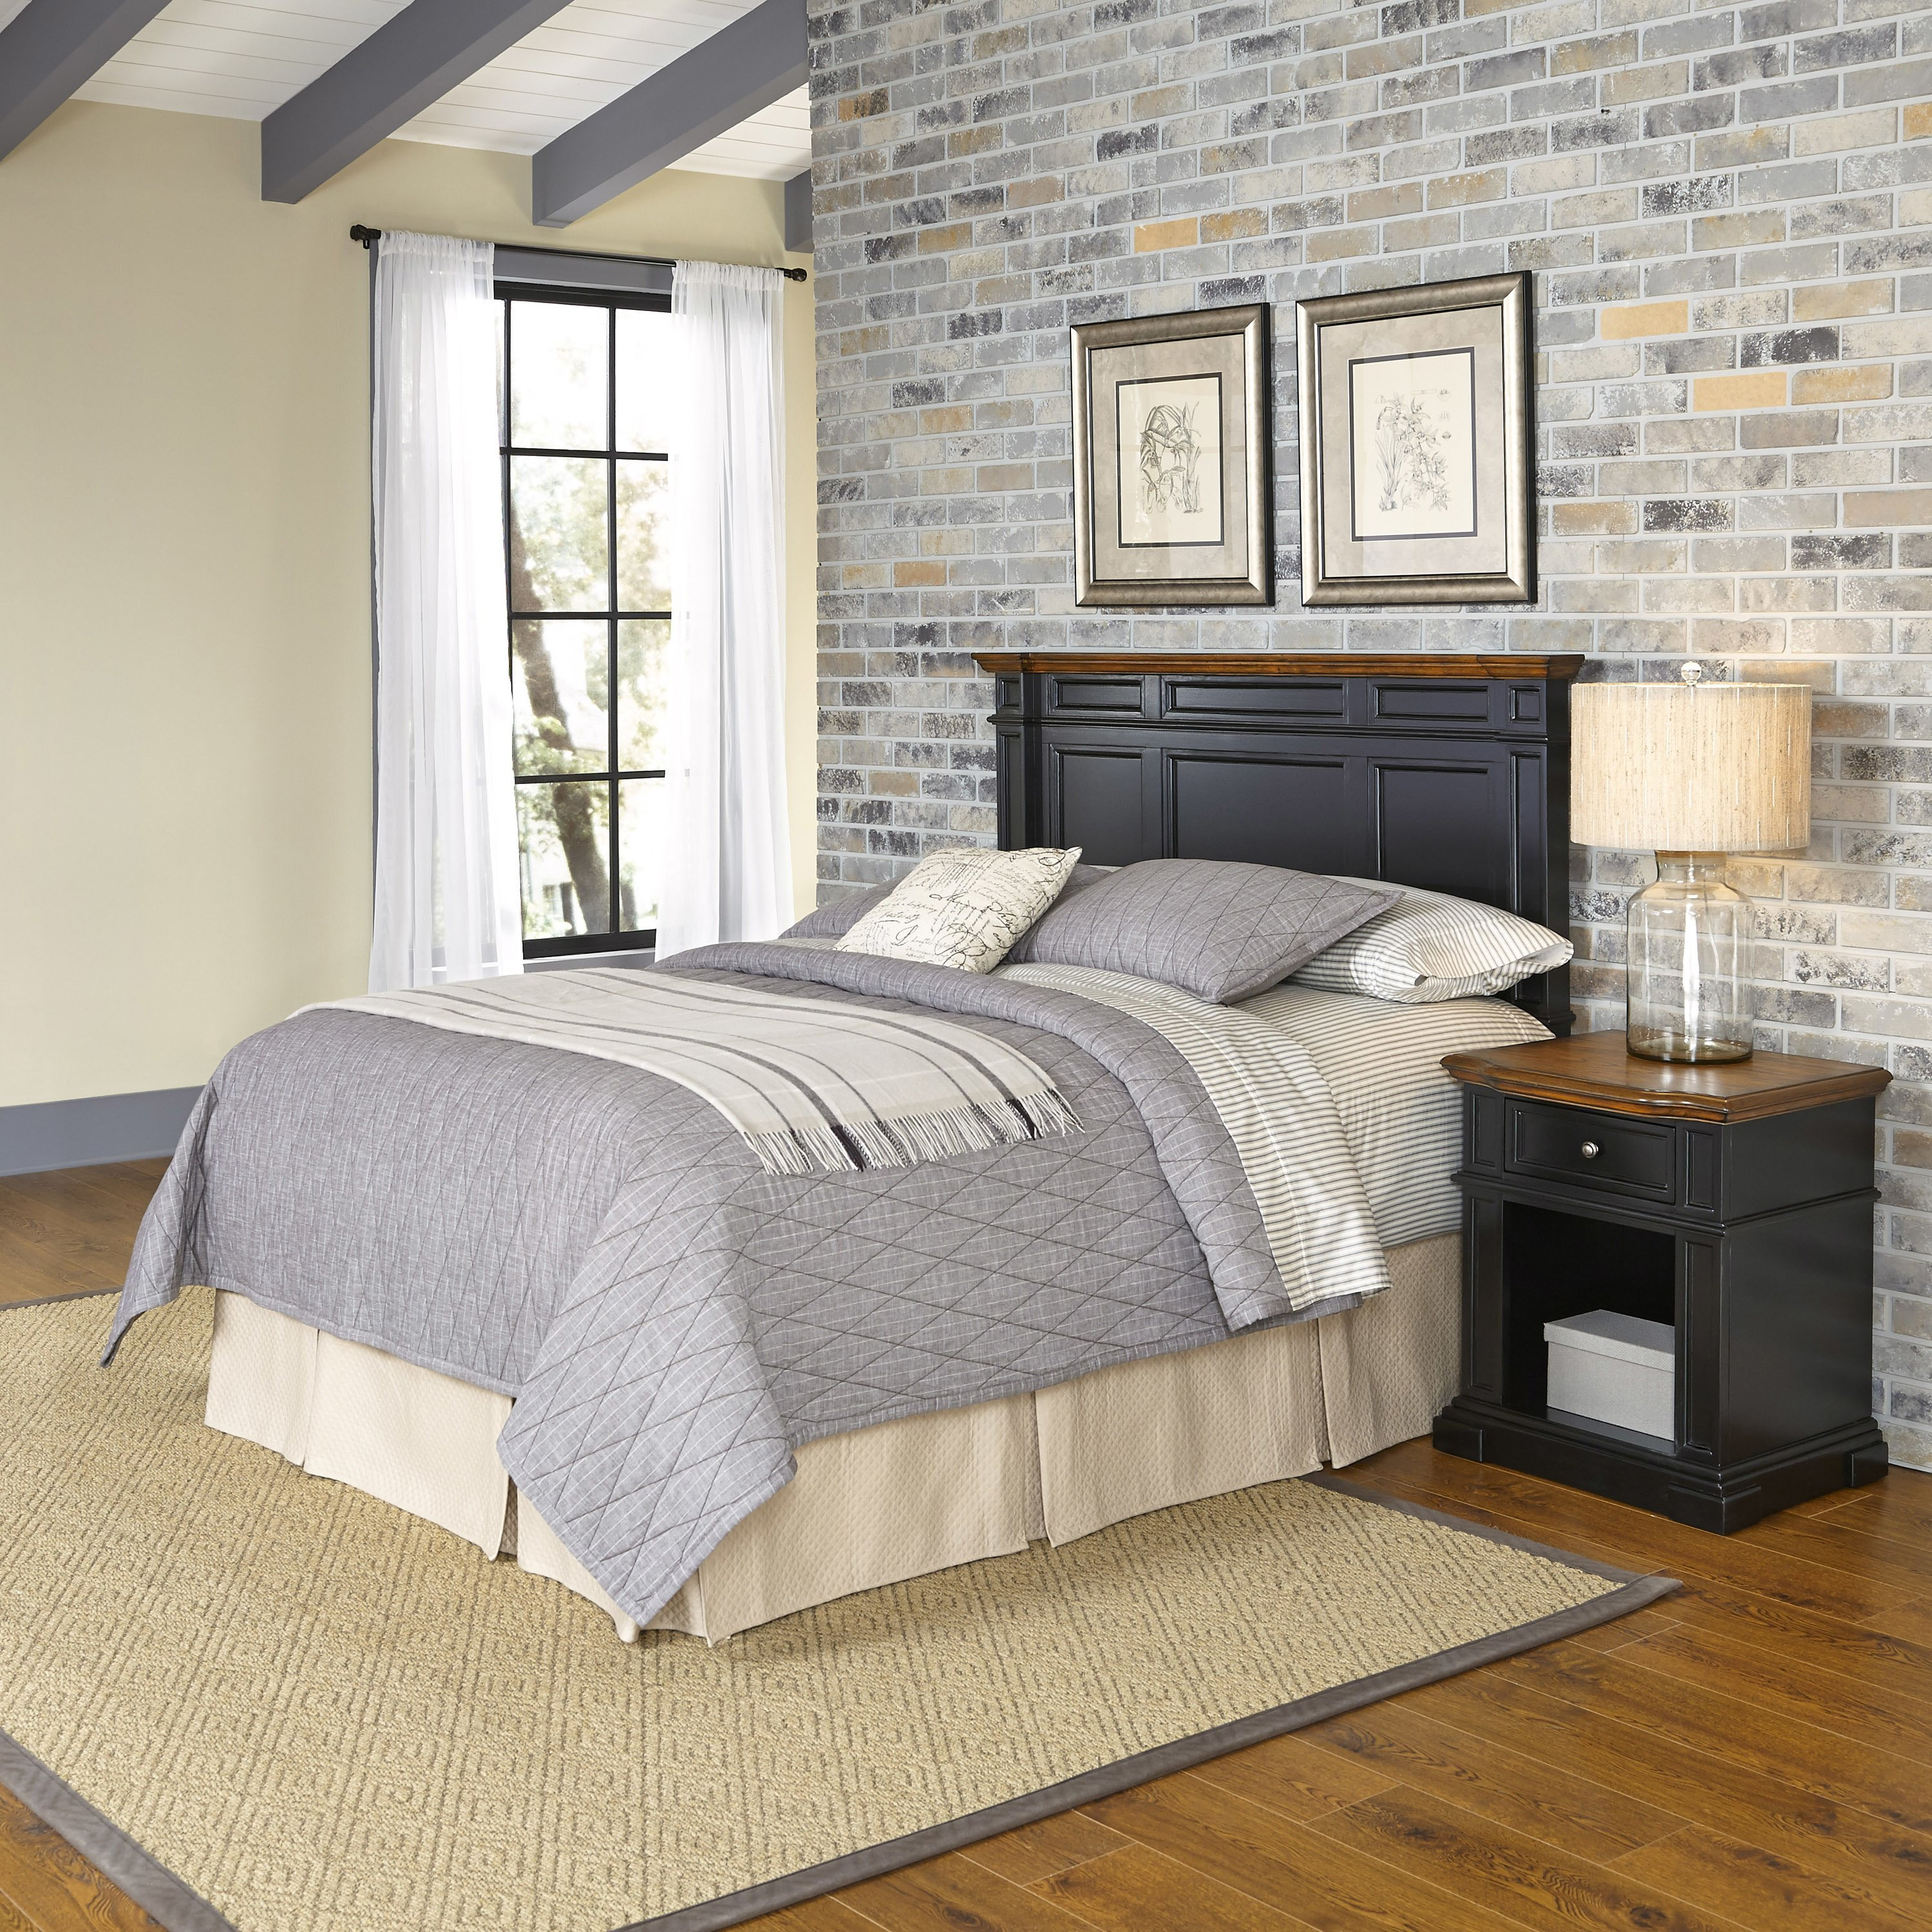 Best Home Styles Americana Platfrom 2 Piece Bedroom Set Reviews Wayfair With Pictures